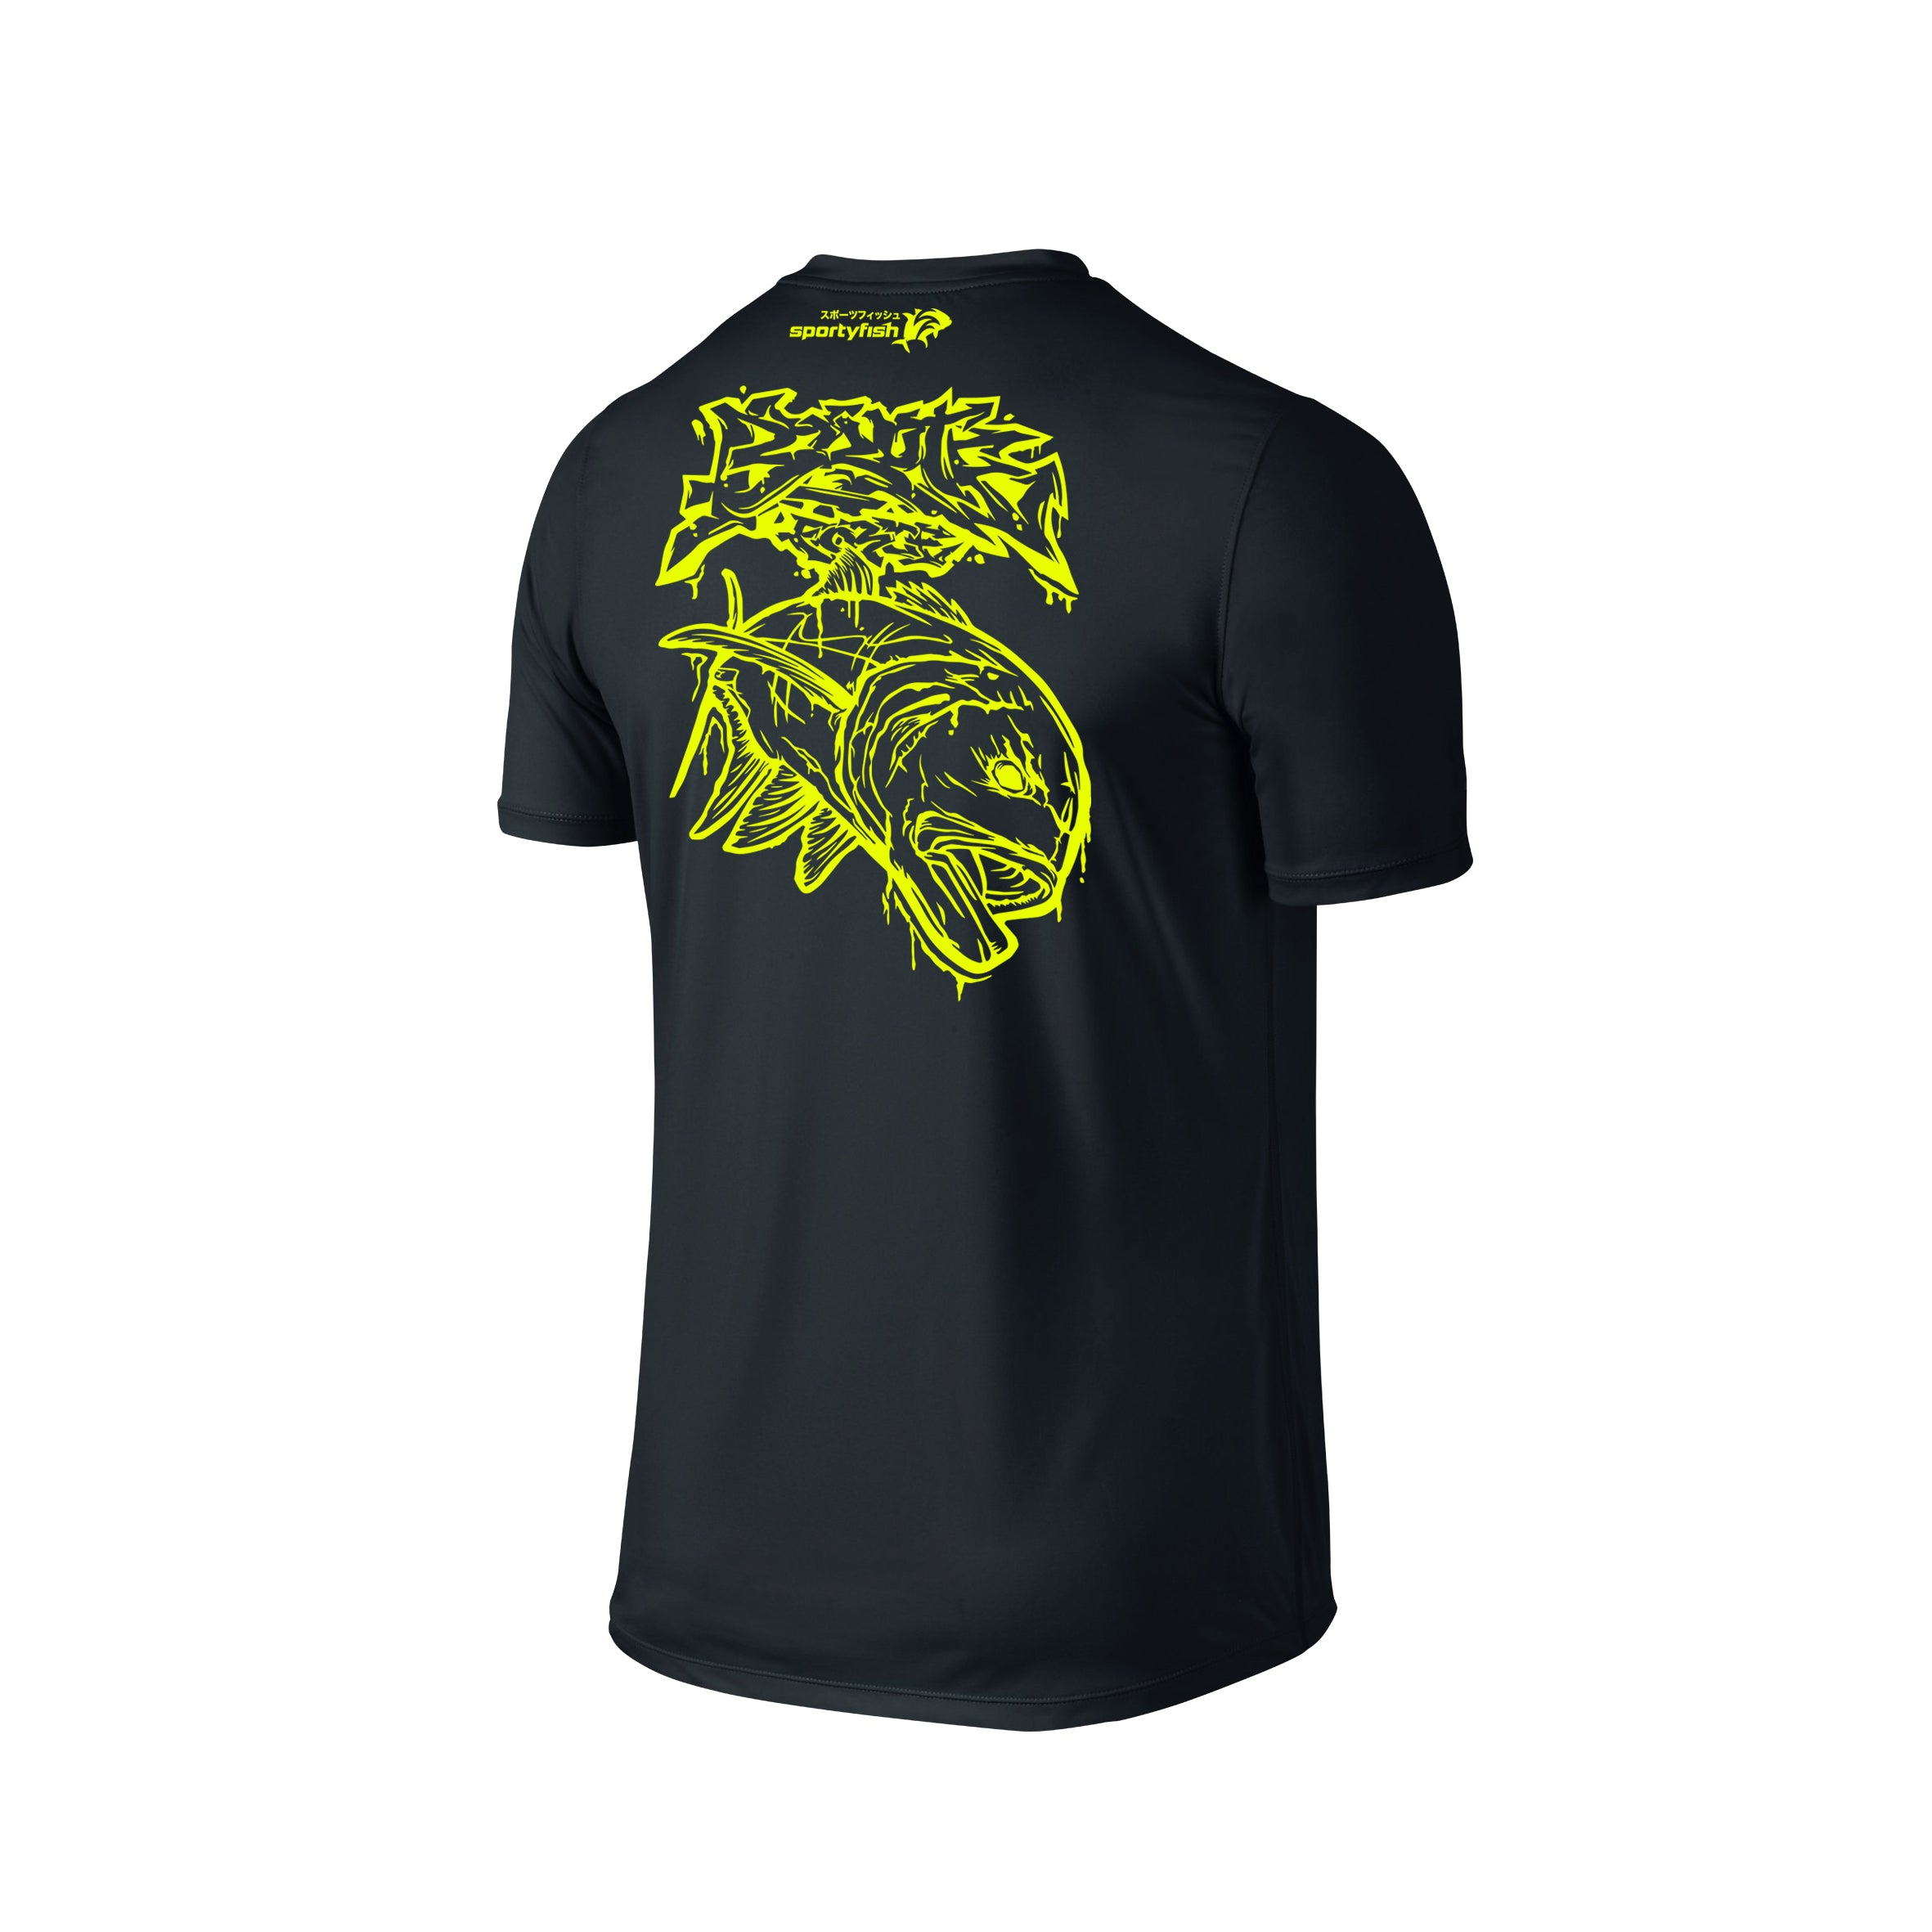 Wildstyle Graffiti Series Black T-shirt(back view)Neon Yellow: Giant Trevally